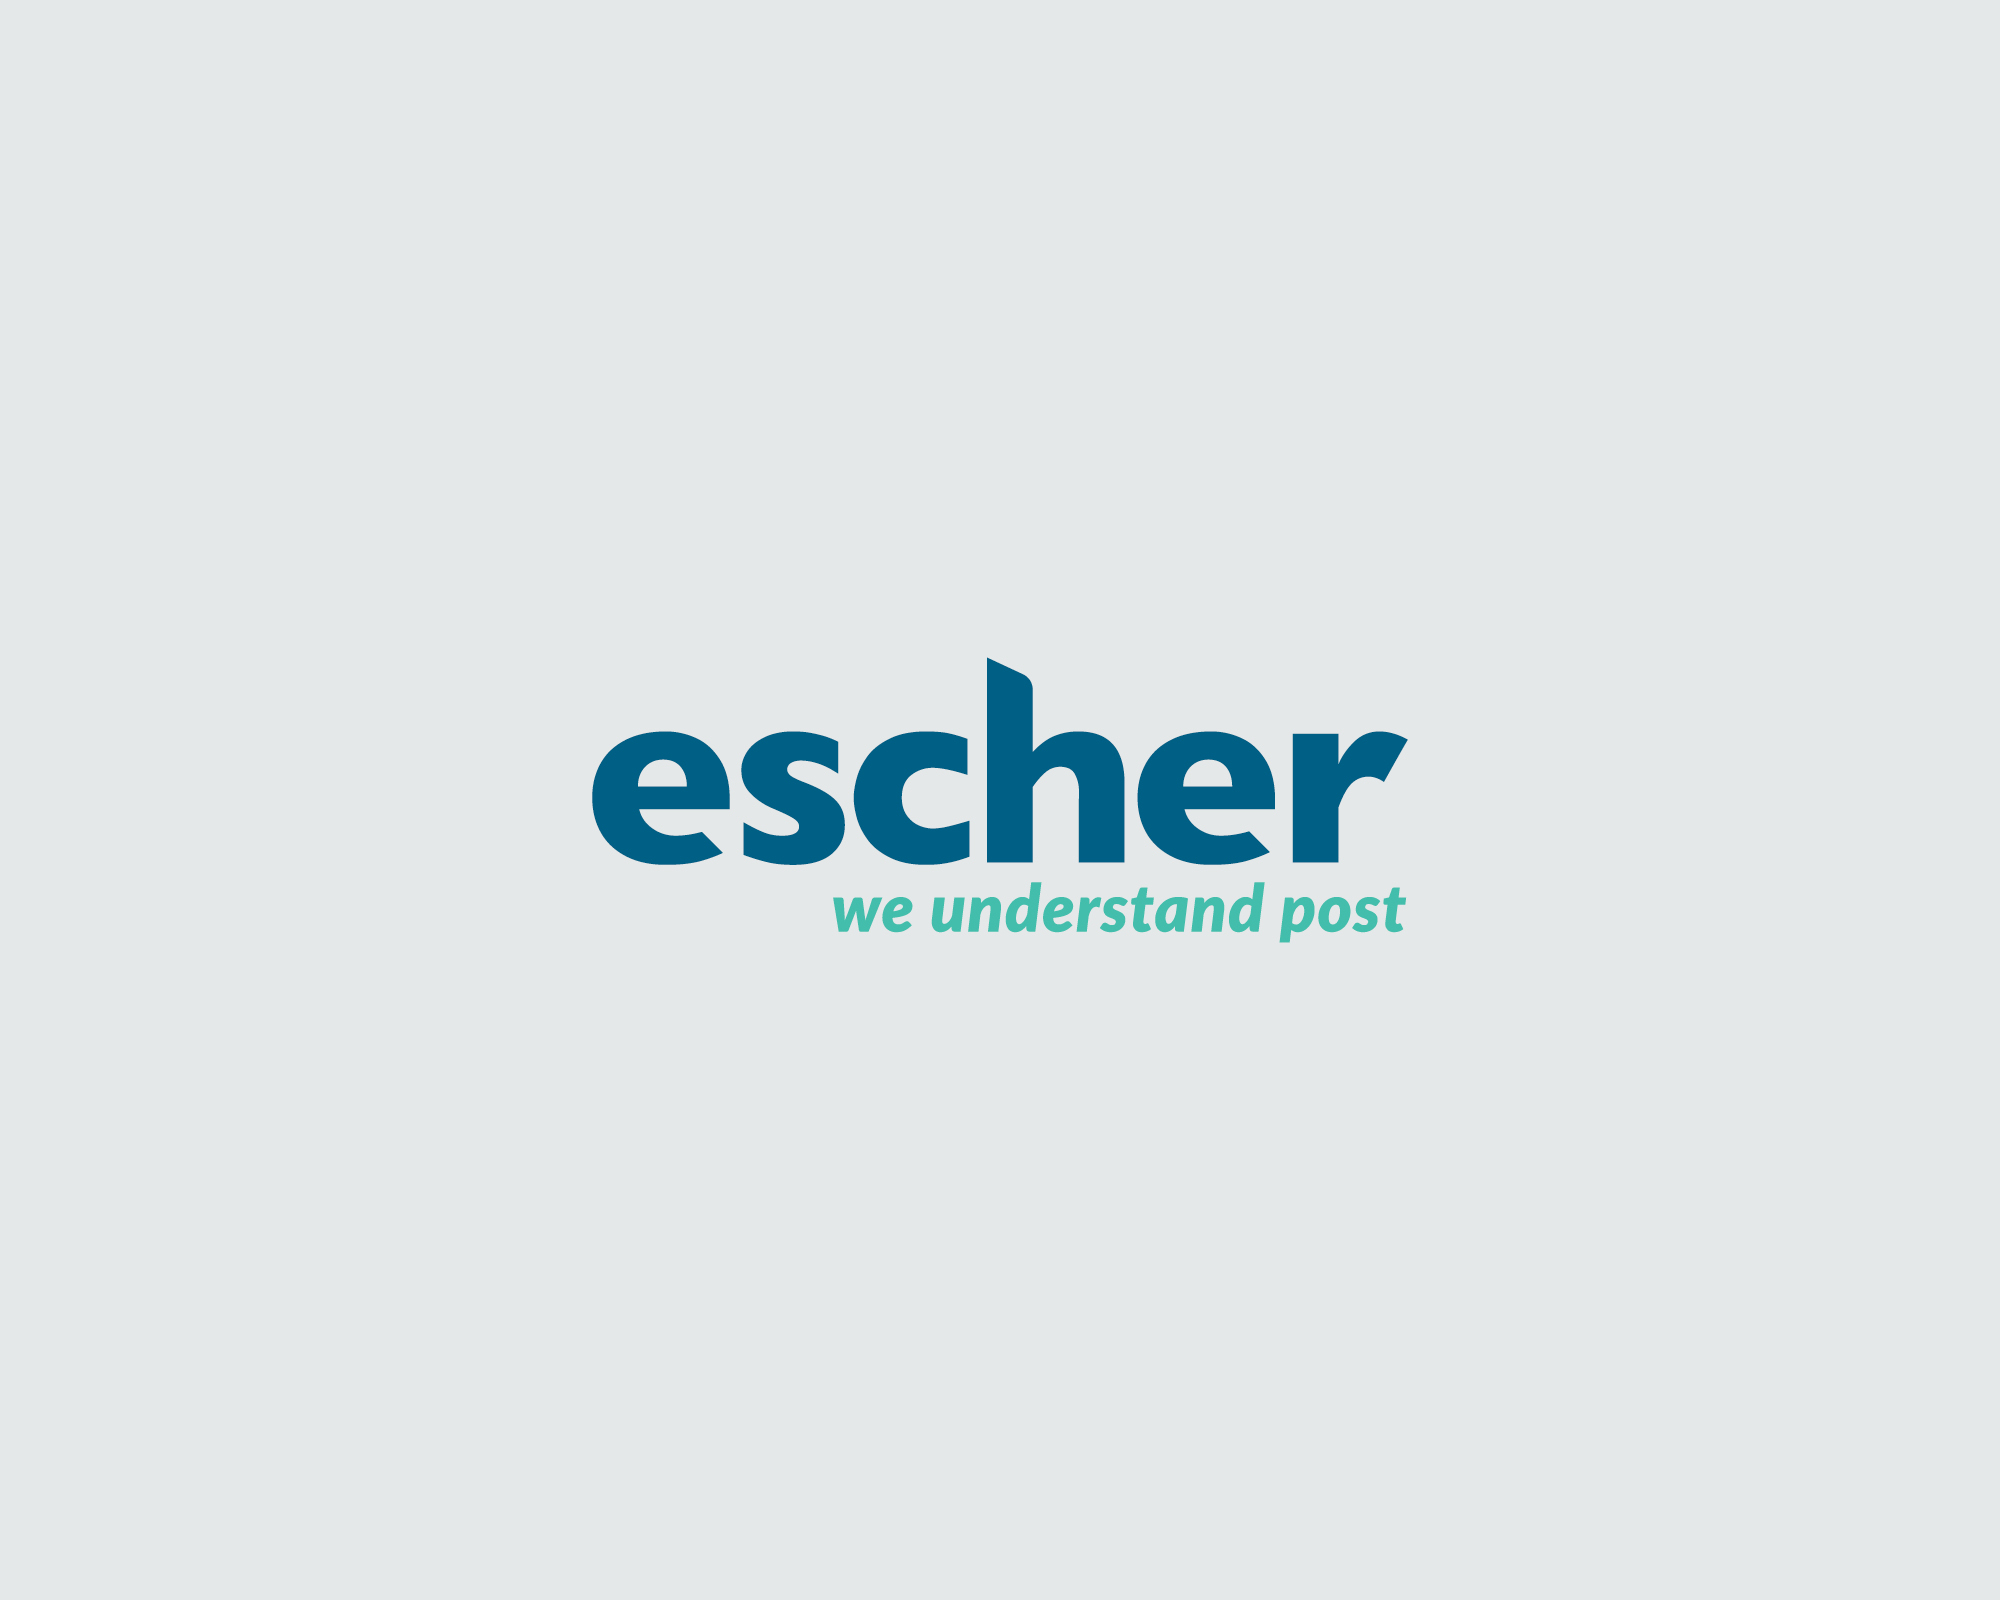 Cover image: Escher